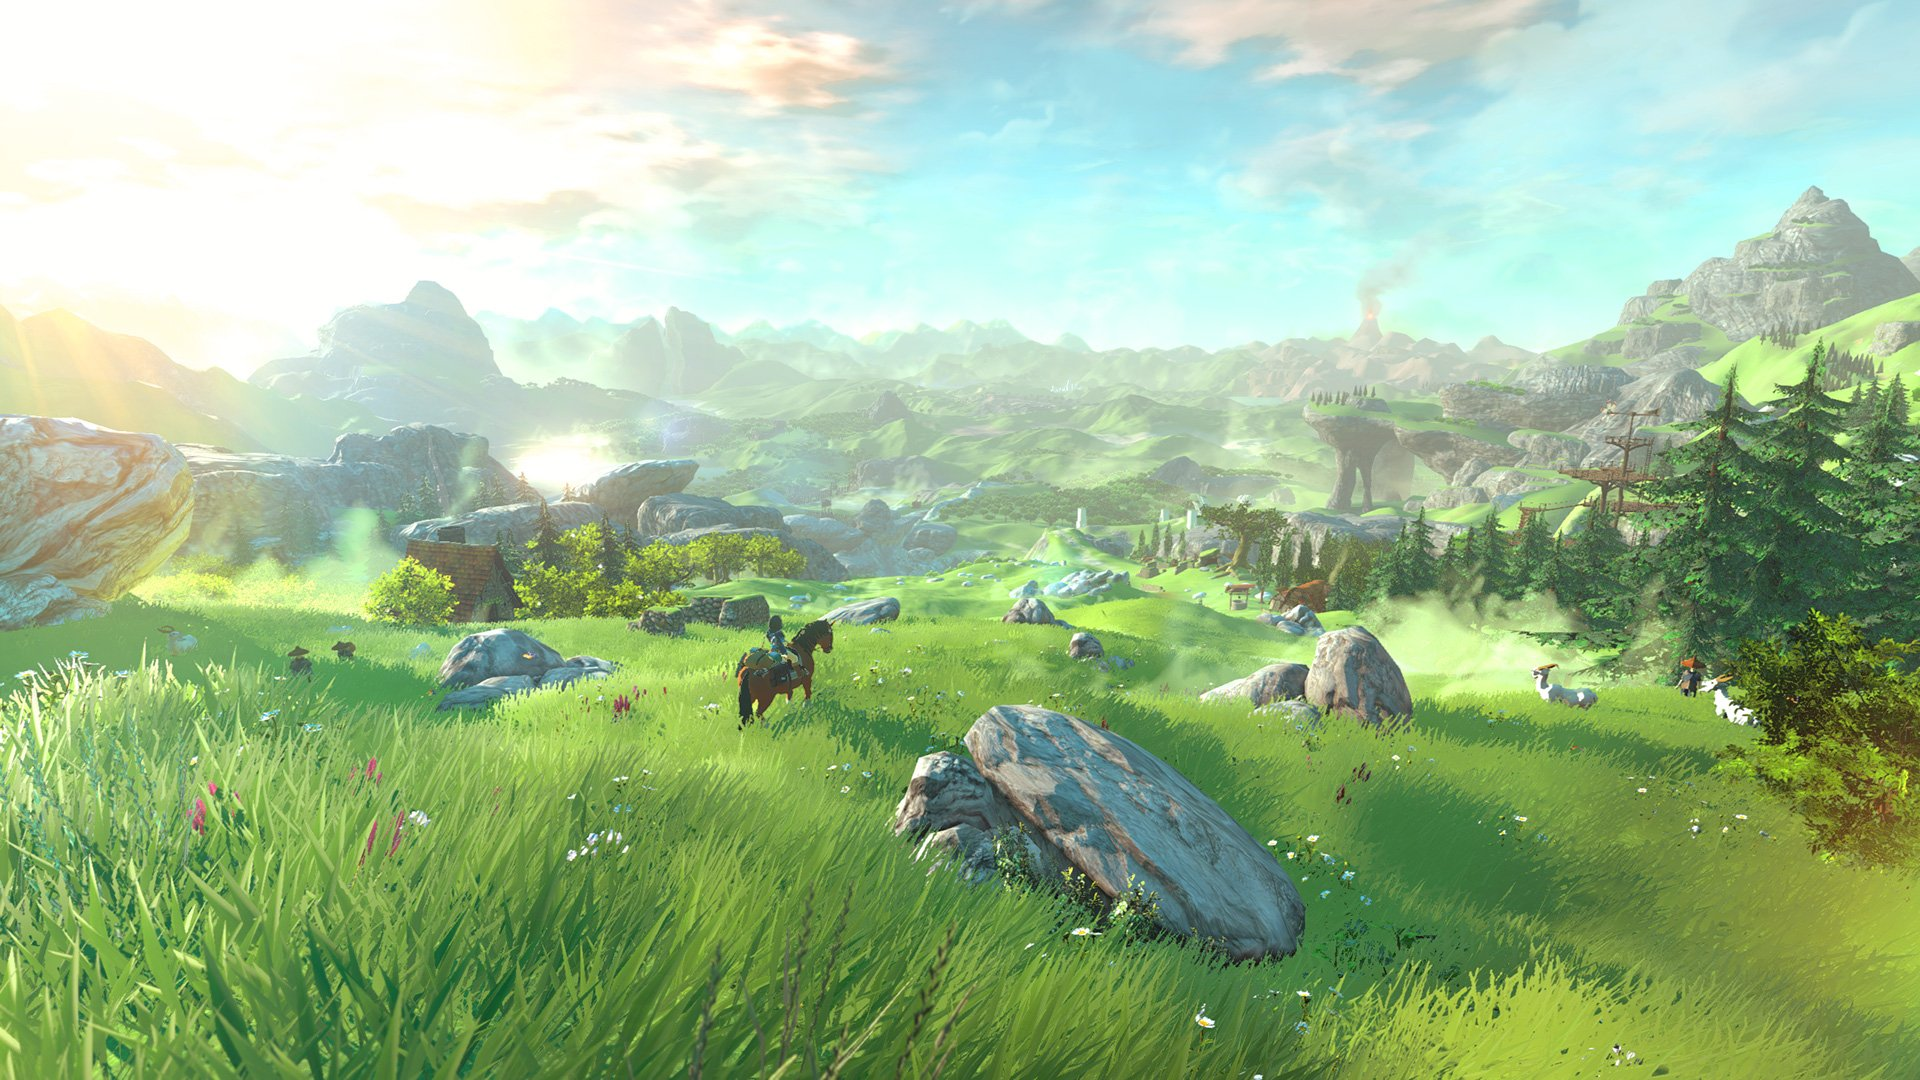 Legend Of Zelda Wii U 1080p Screenshots Game Usagi 1920x1080